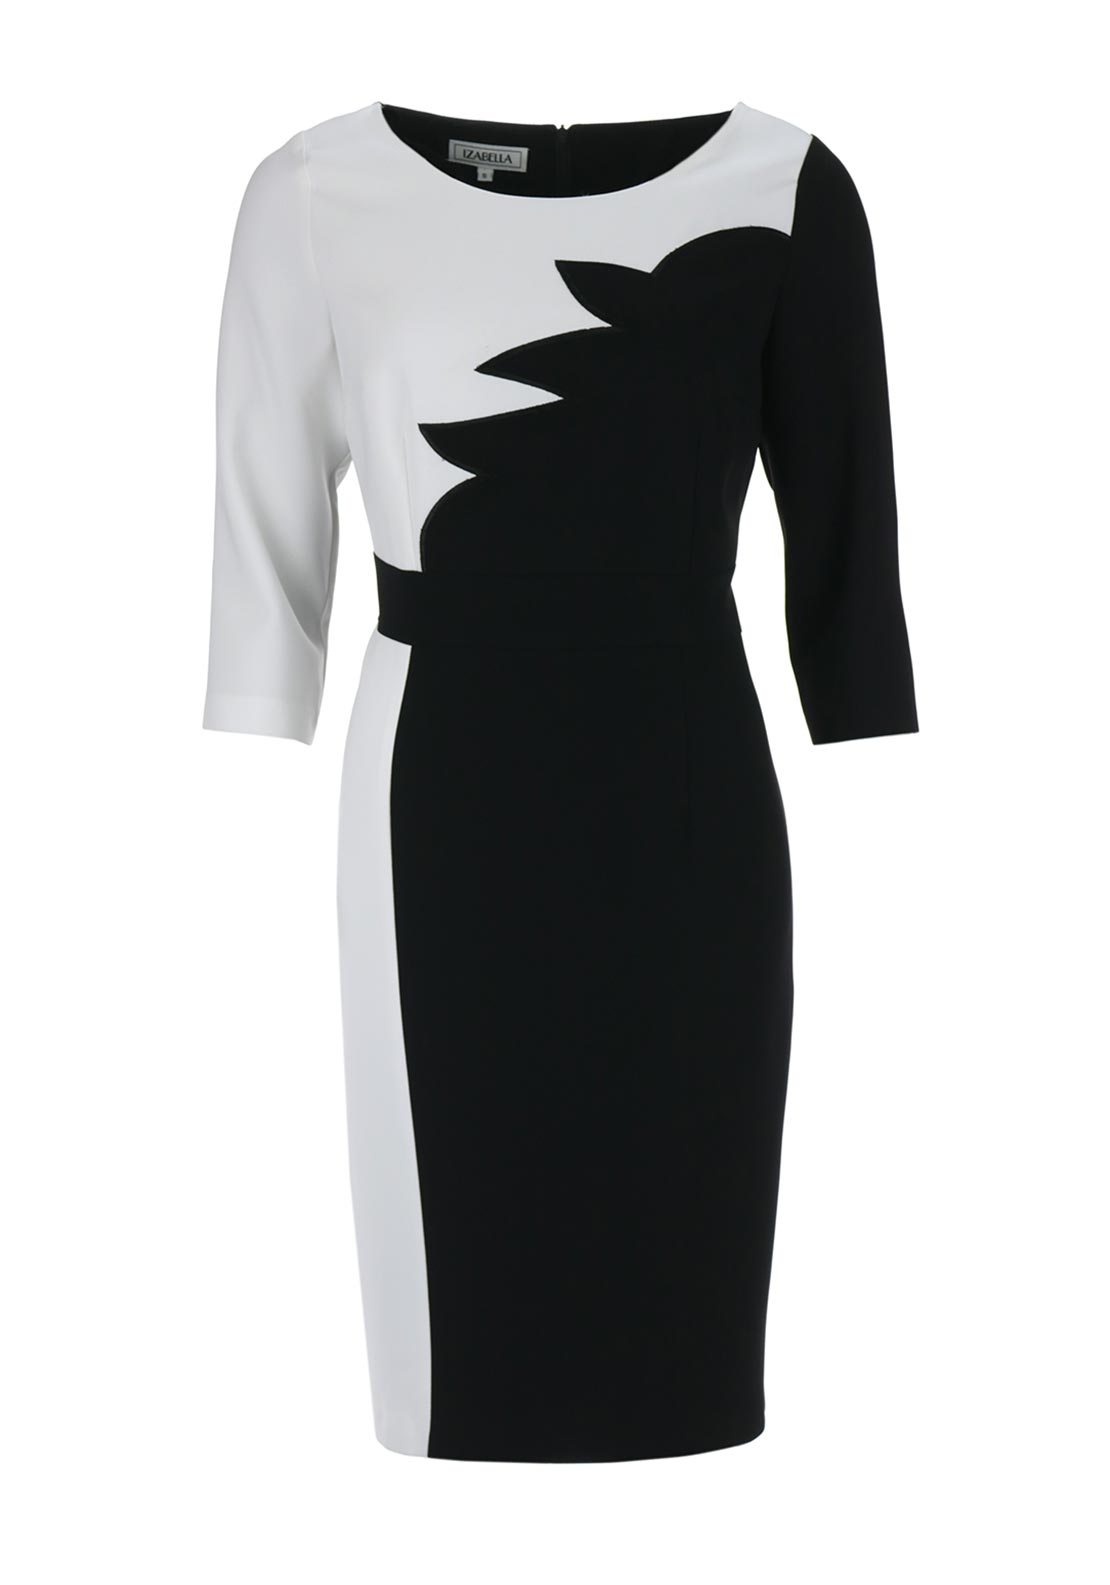 Izabella Monochrome Cropped Sleeve Pencil Dress, Black and White